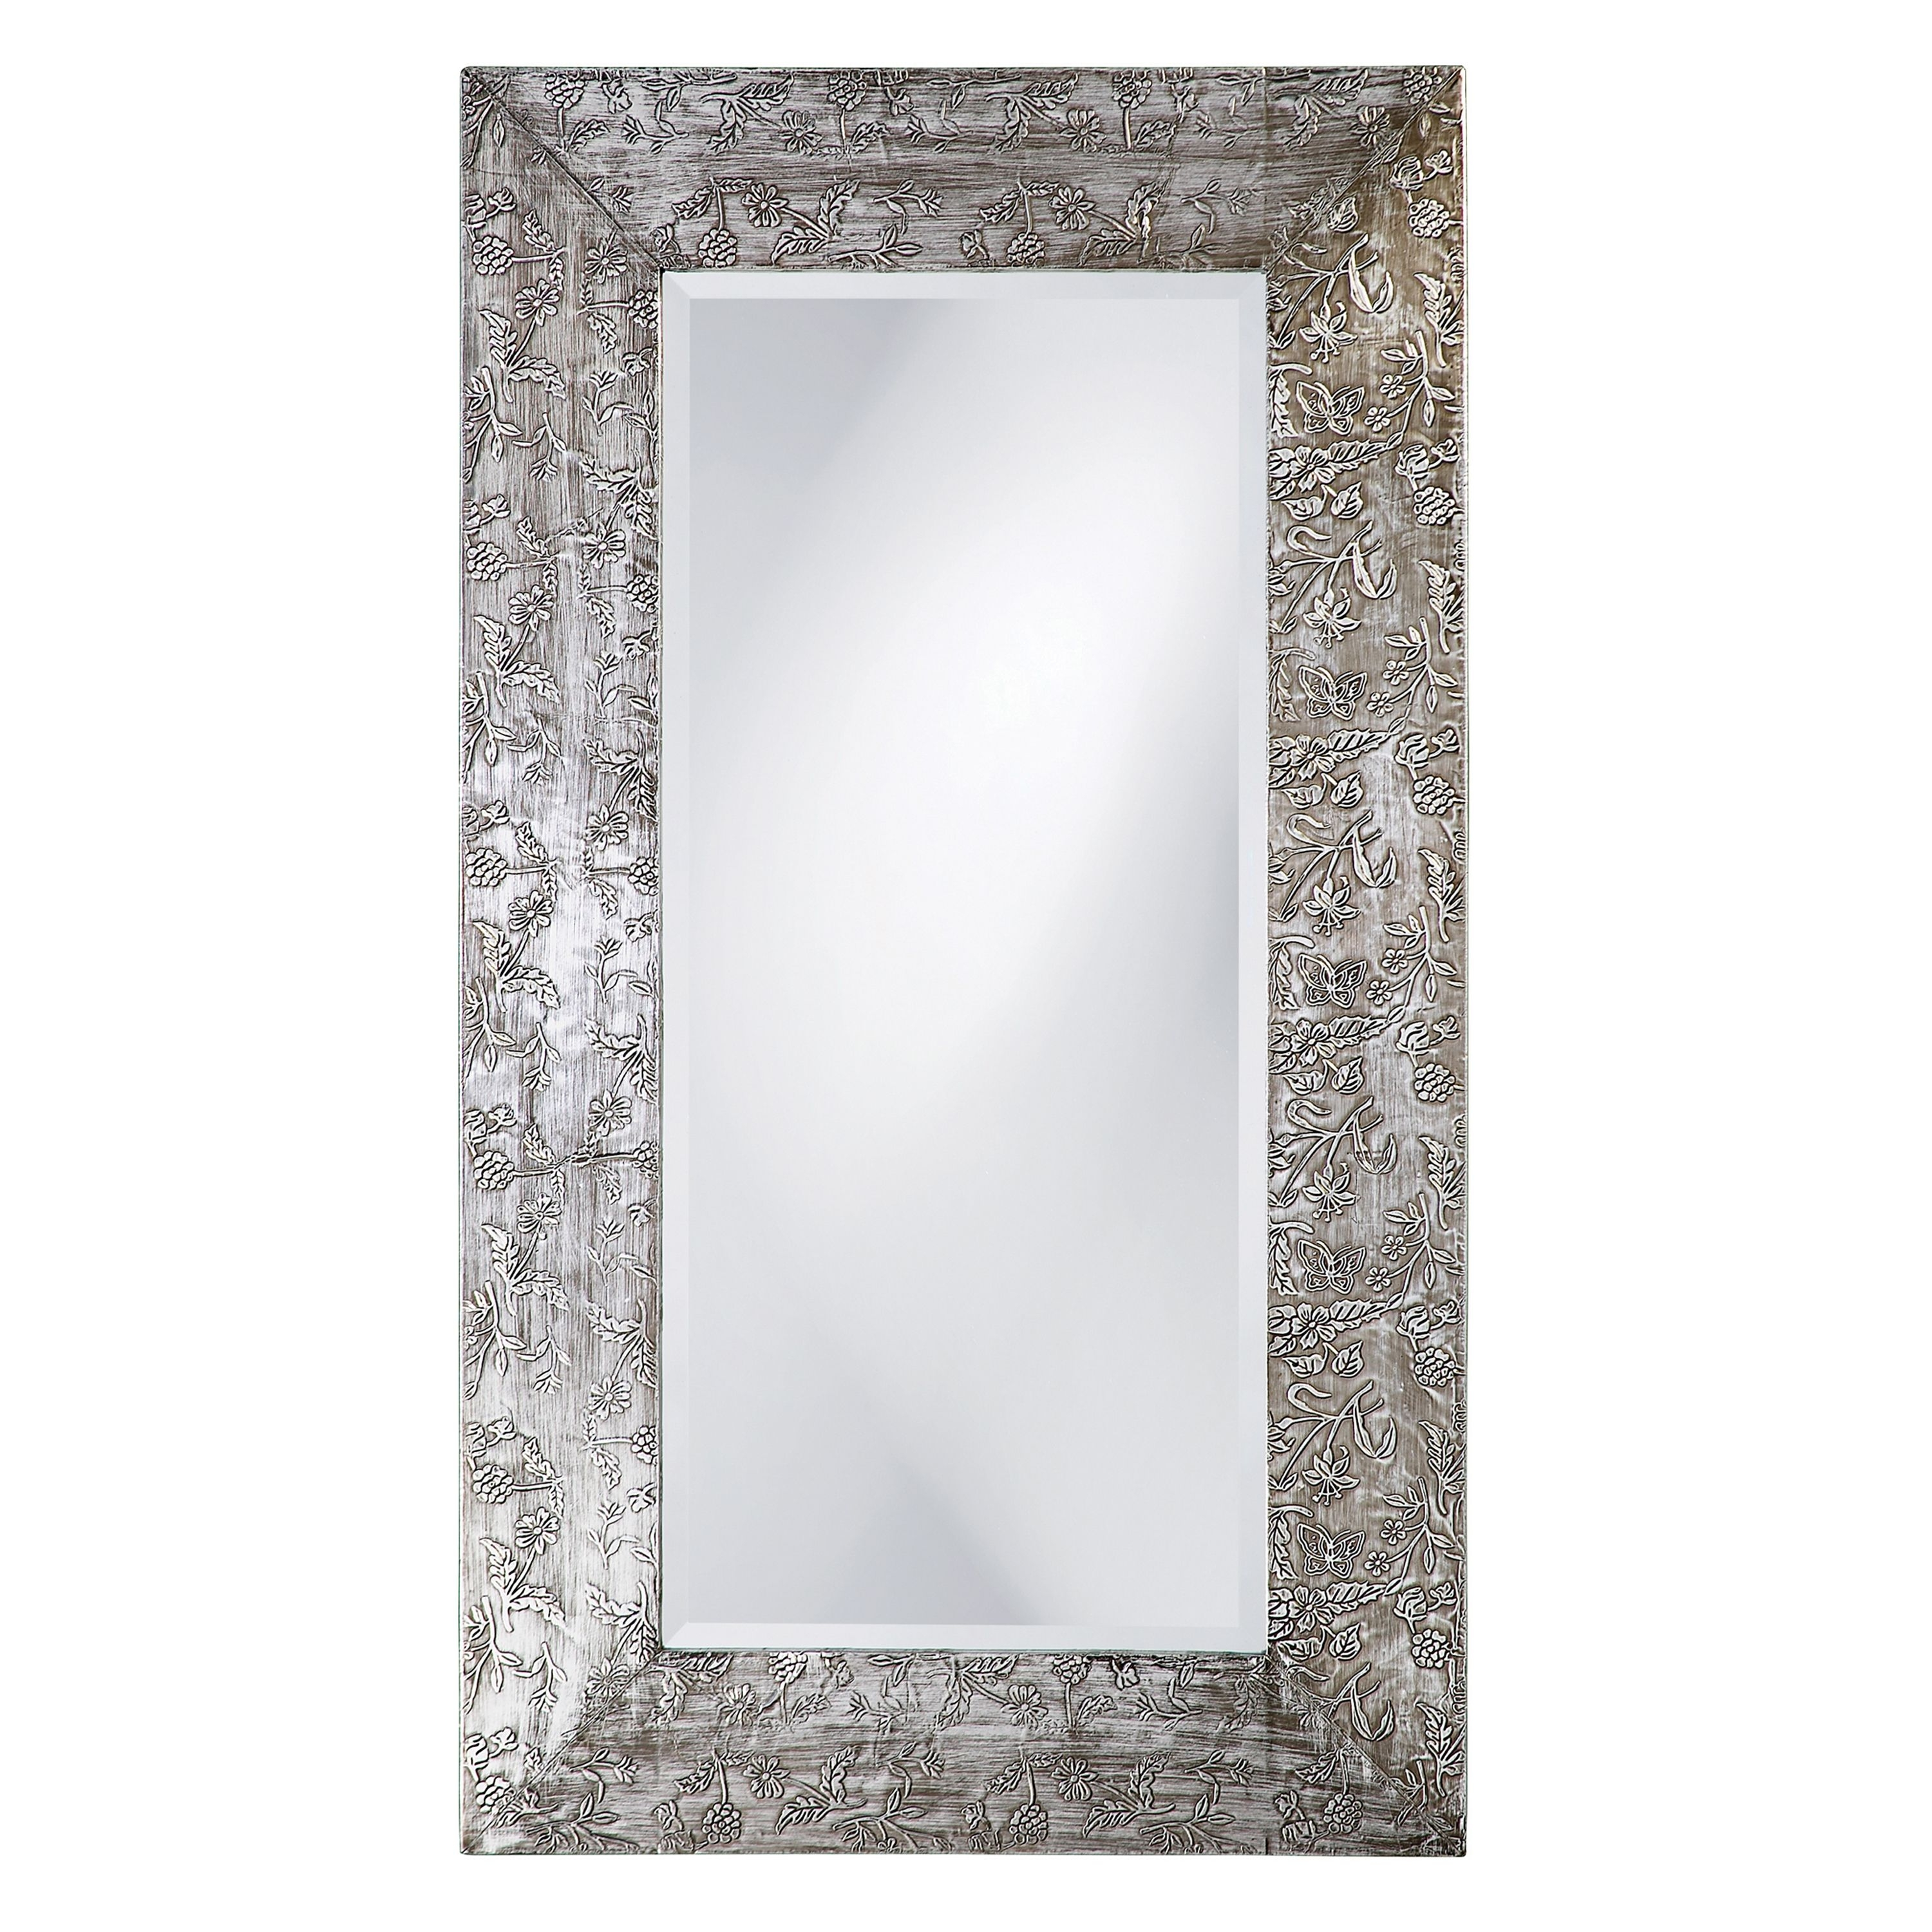 Permalink to Conthey Wall Mirror Silver